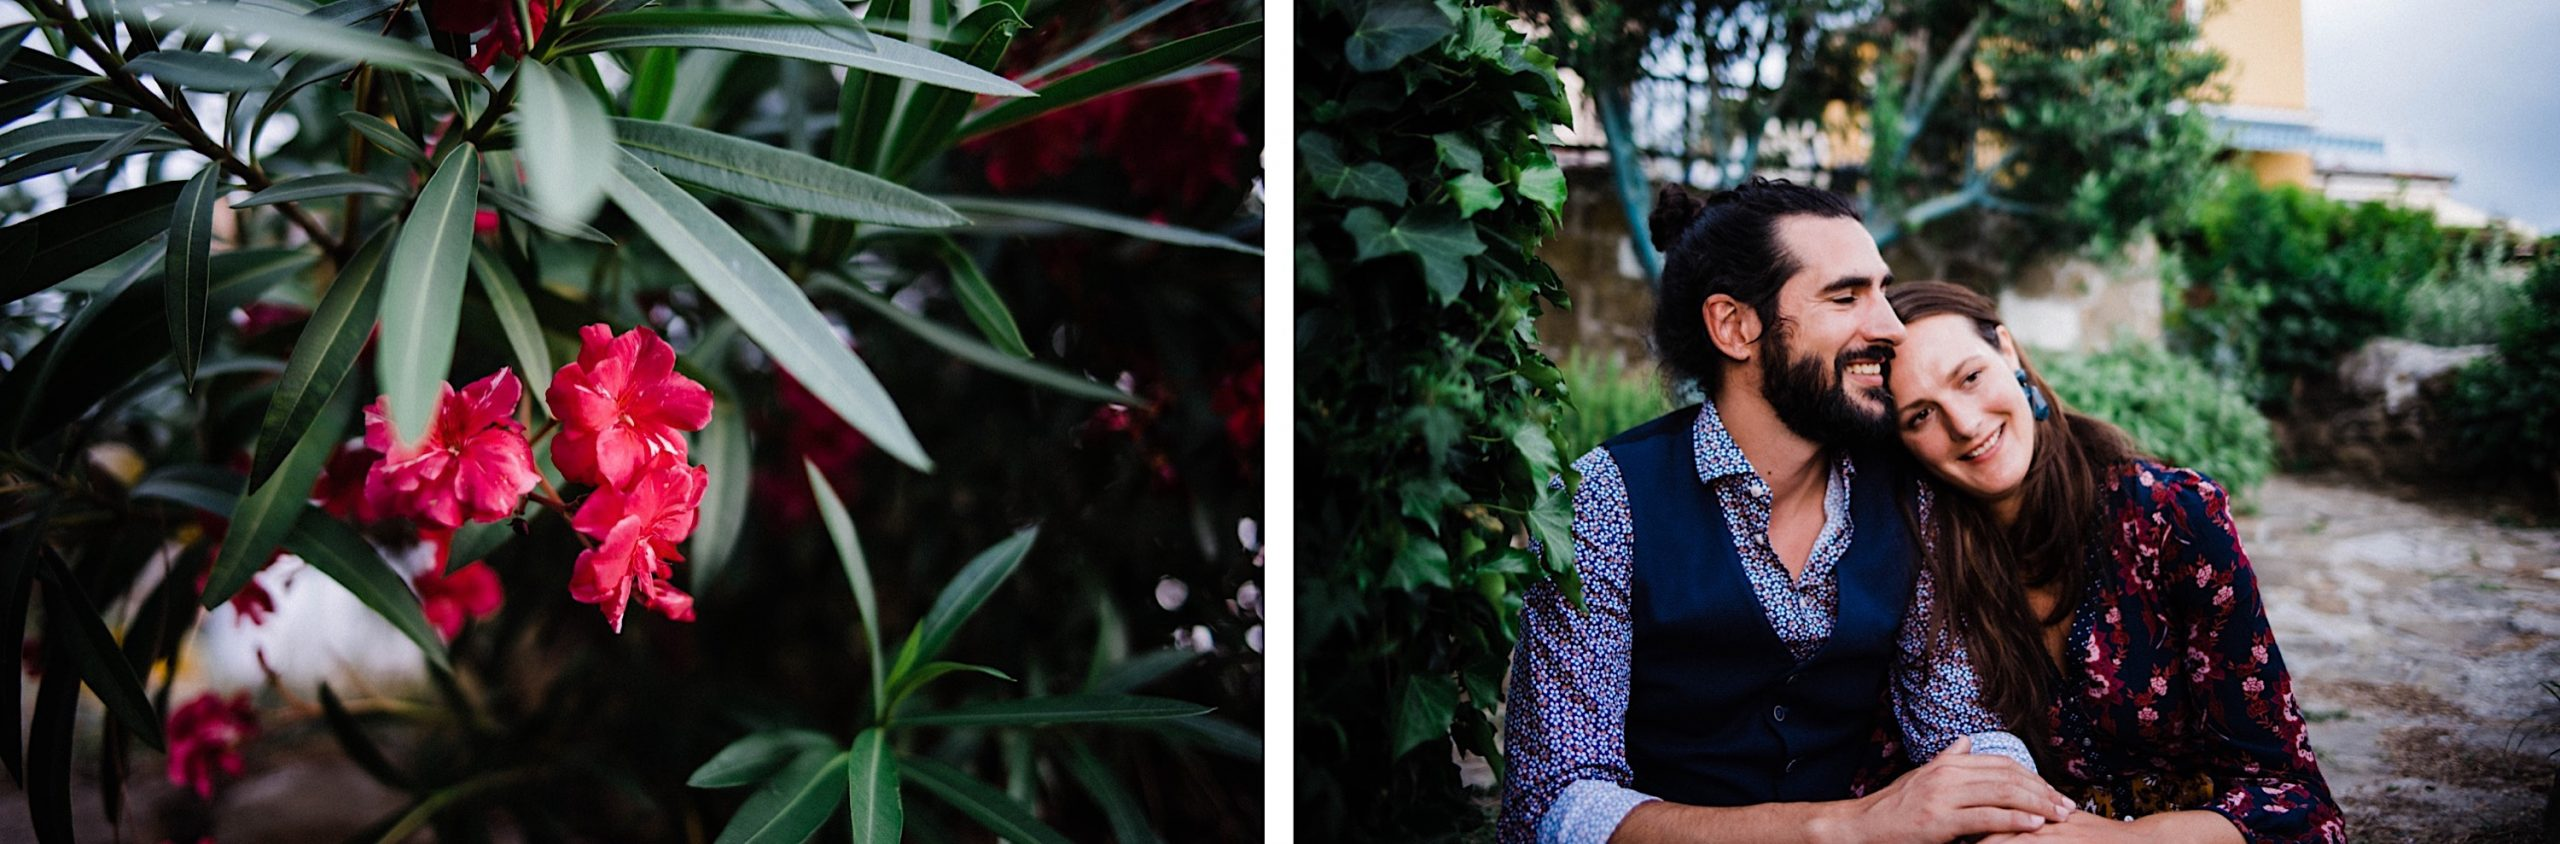 Two photos from an Italian elopement in Trieste, one of some pink flowers, and the other of a newlywed couple sitting together and smiling in a garden outside Osmiza Stoka.